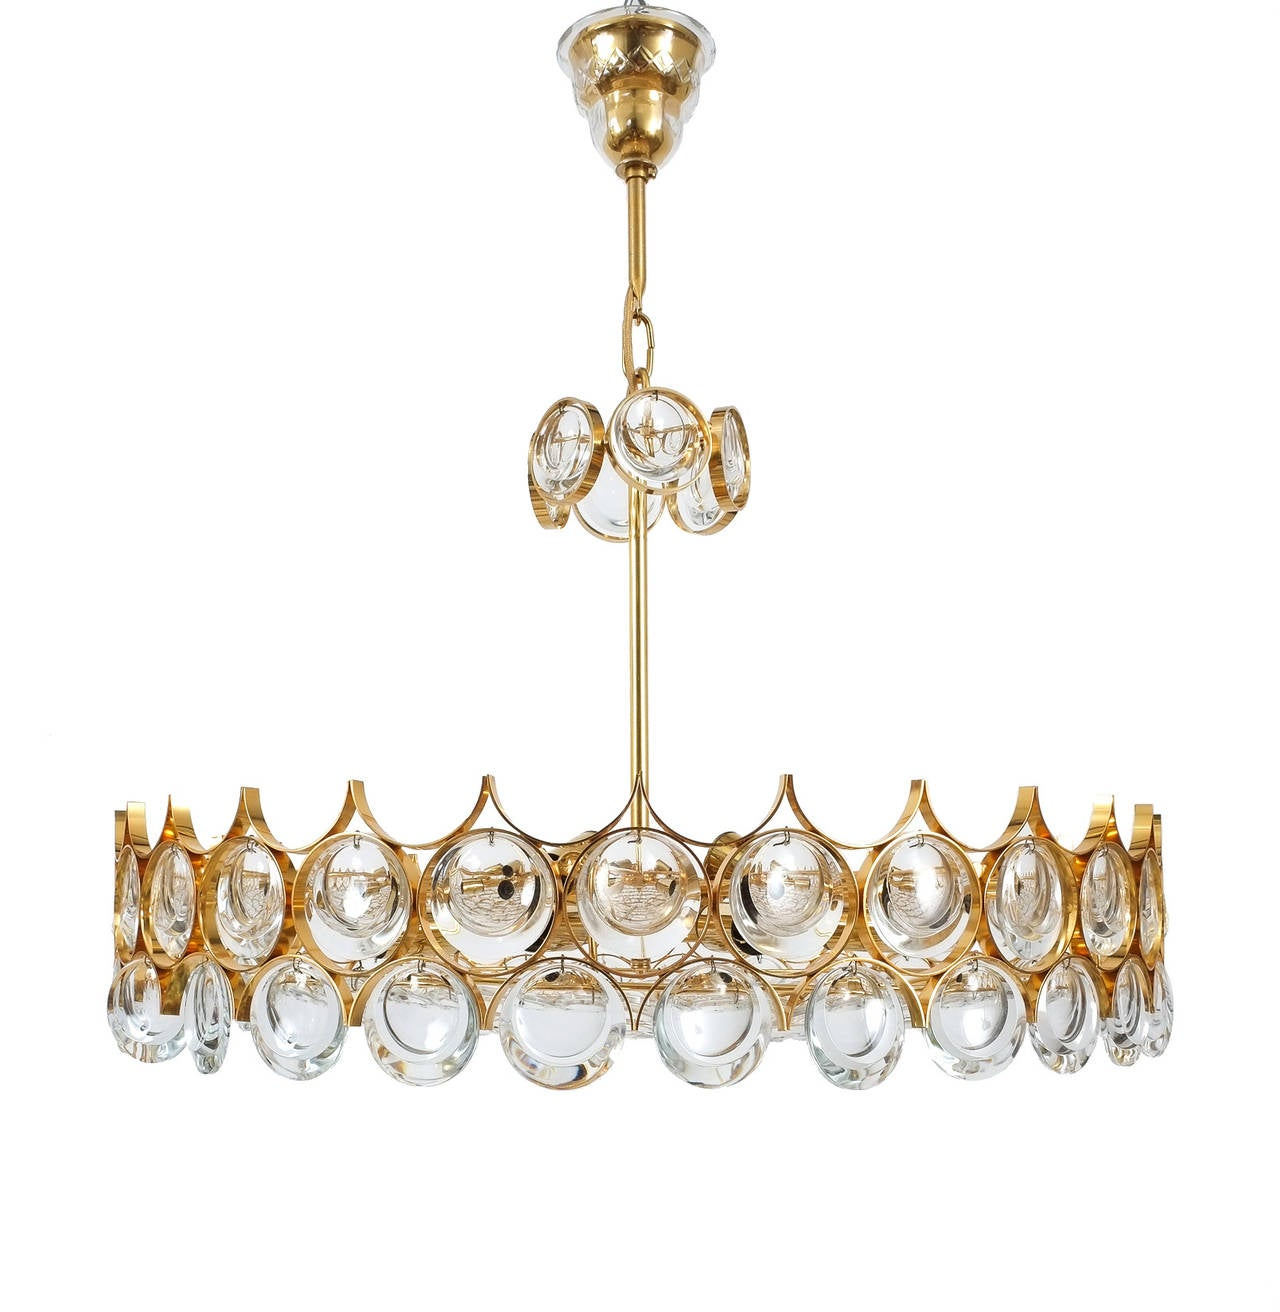 Refurbished Palwa gold brass and glass large chandelier ceiling lamp, 1960, Germany. Measuring 28 inch in diameter, this gold-plated chandelier by Palwa has got a stunning yet minimalistic design executed with a taste for excellence in both